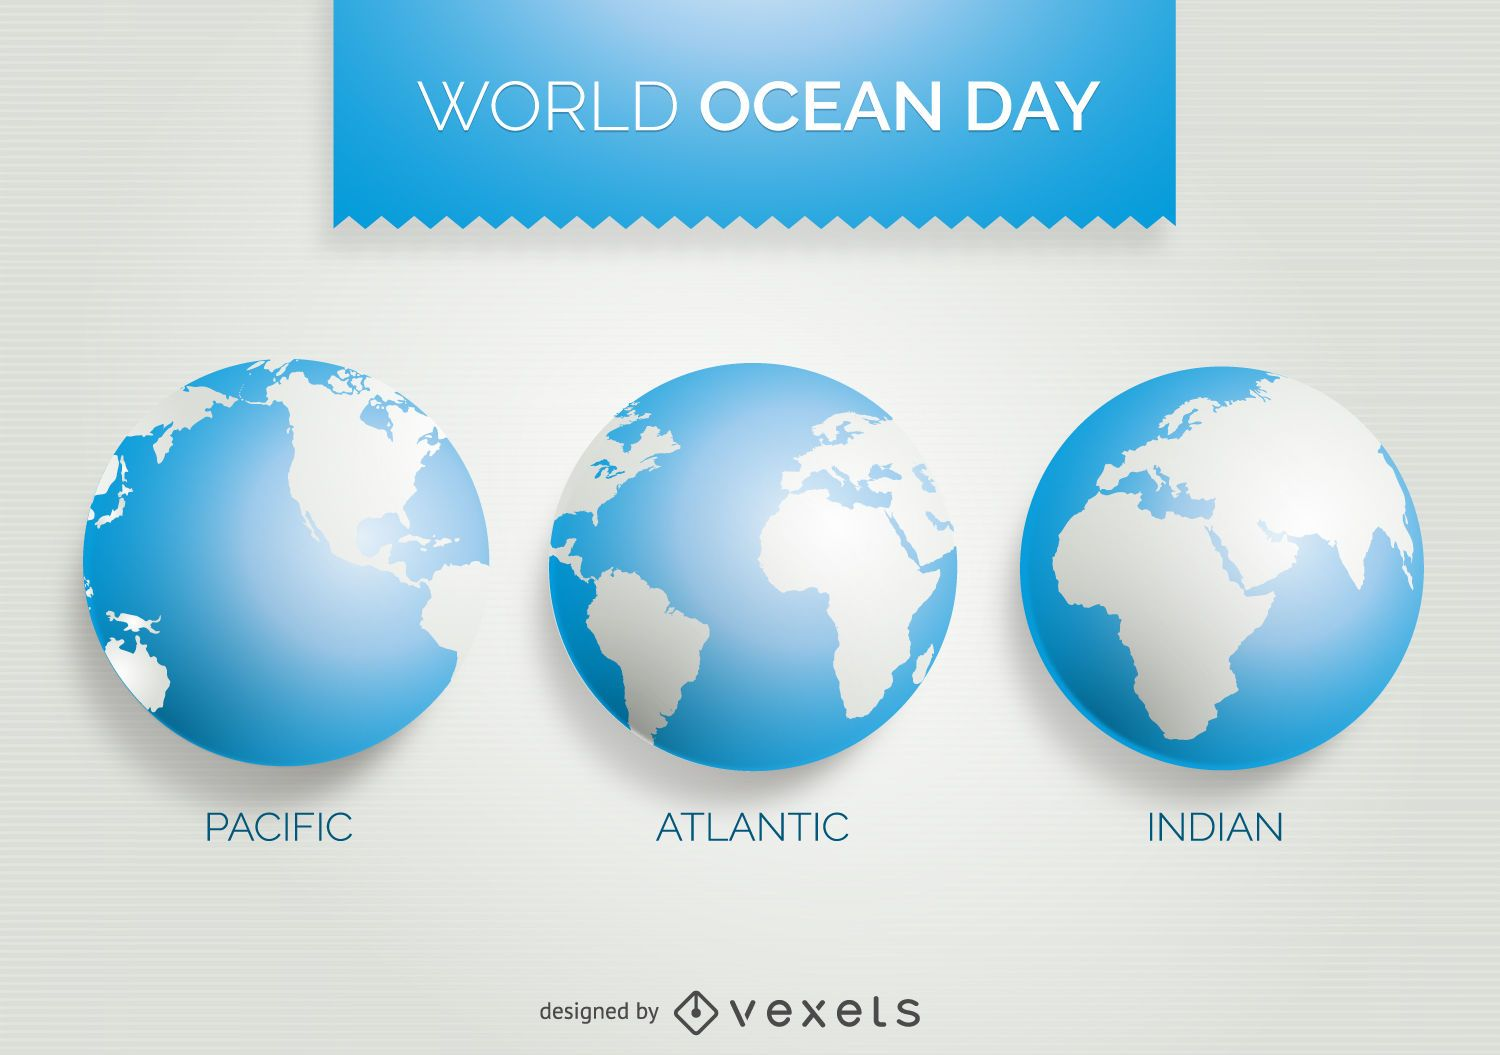 World ocean day 3 world map design vector download world ocean day 3 world map design download large image 1601x1126px gumiabroncs Images